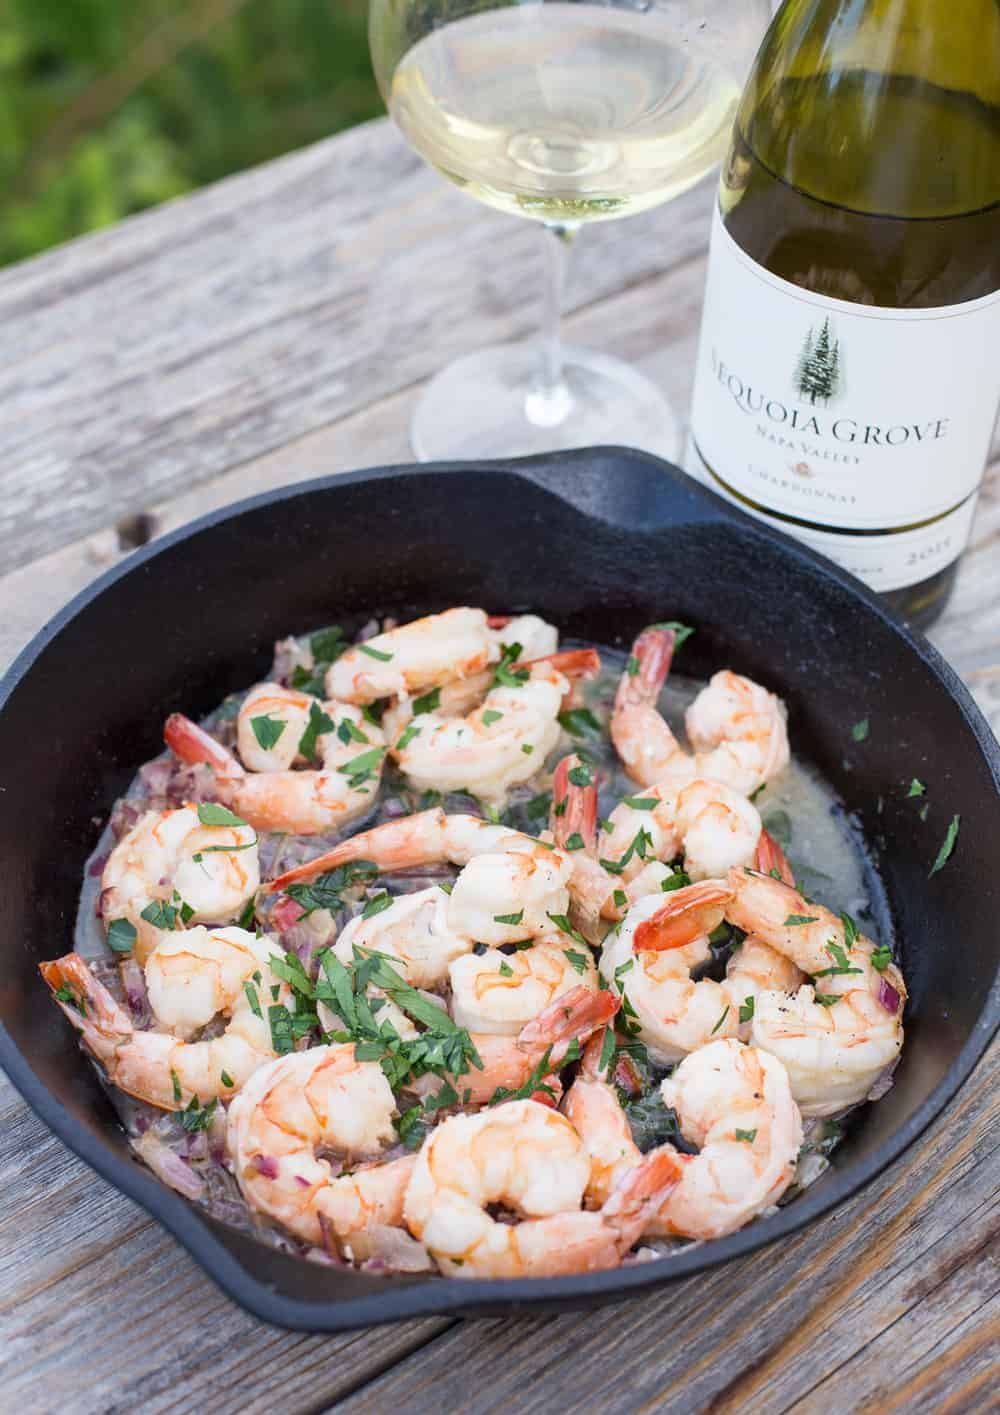 Grilled Garlic Chardonnay Shrimp and Sequia Grove Chardonnay